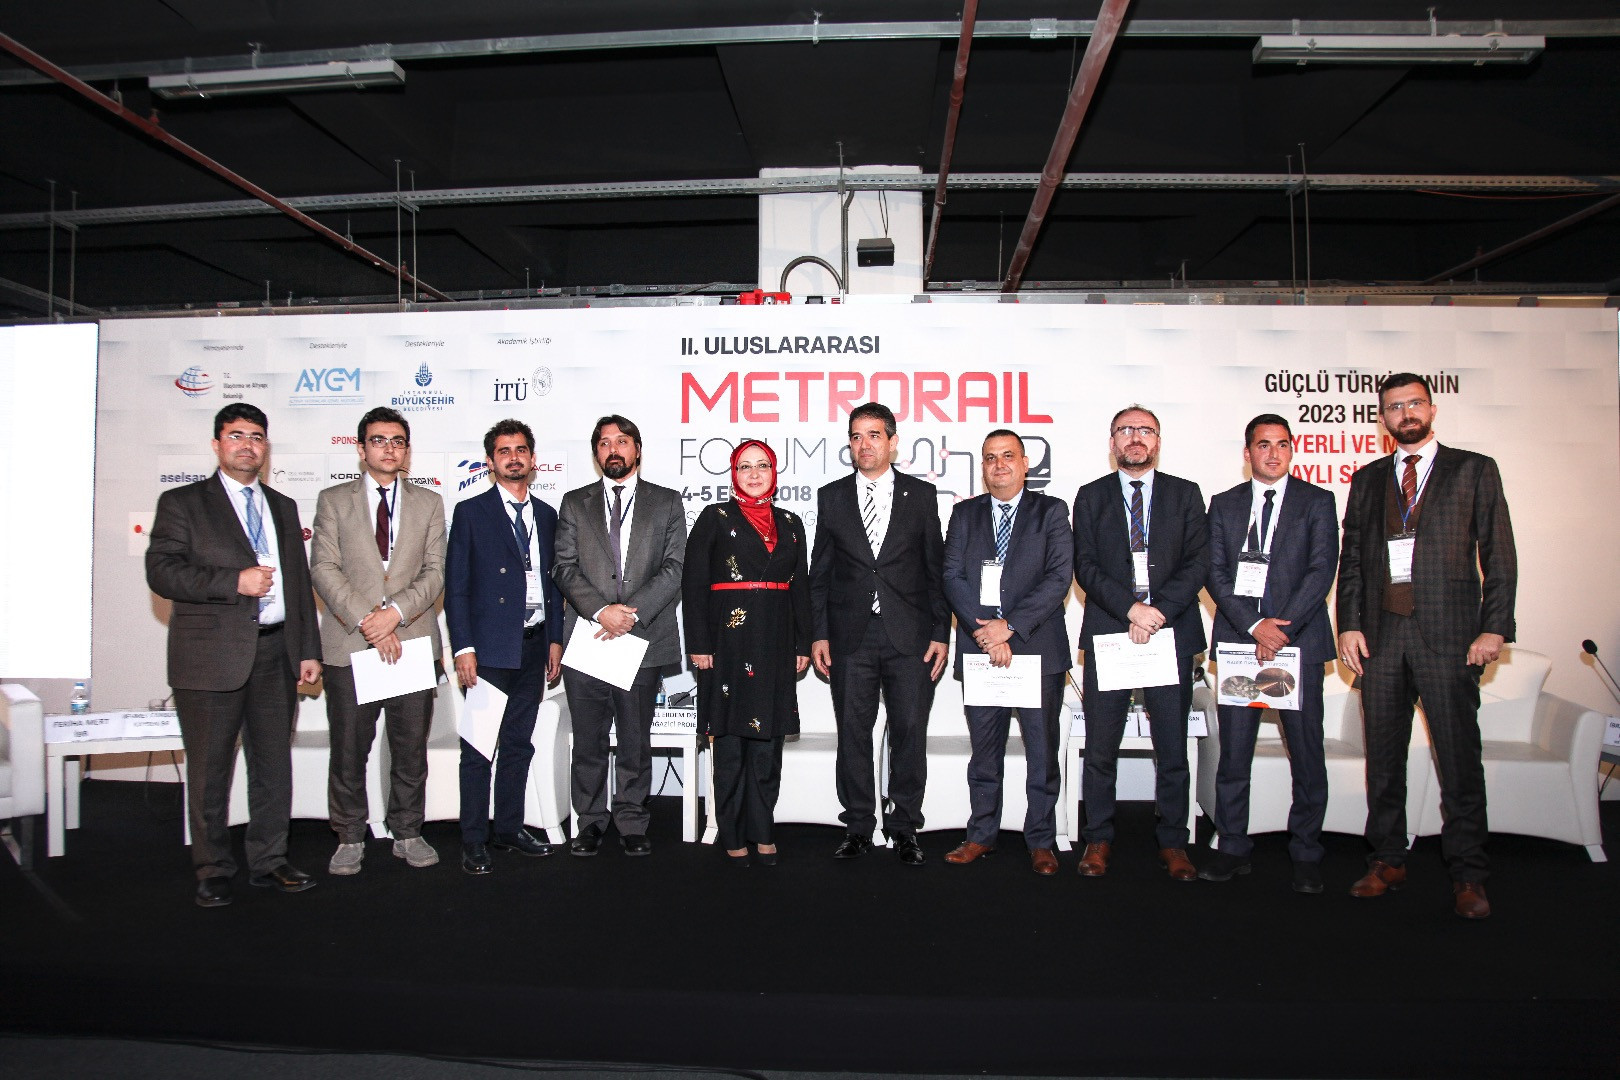 We Attended the 2nd International Metrorail Forum.